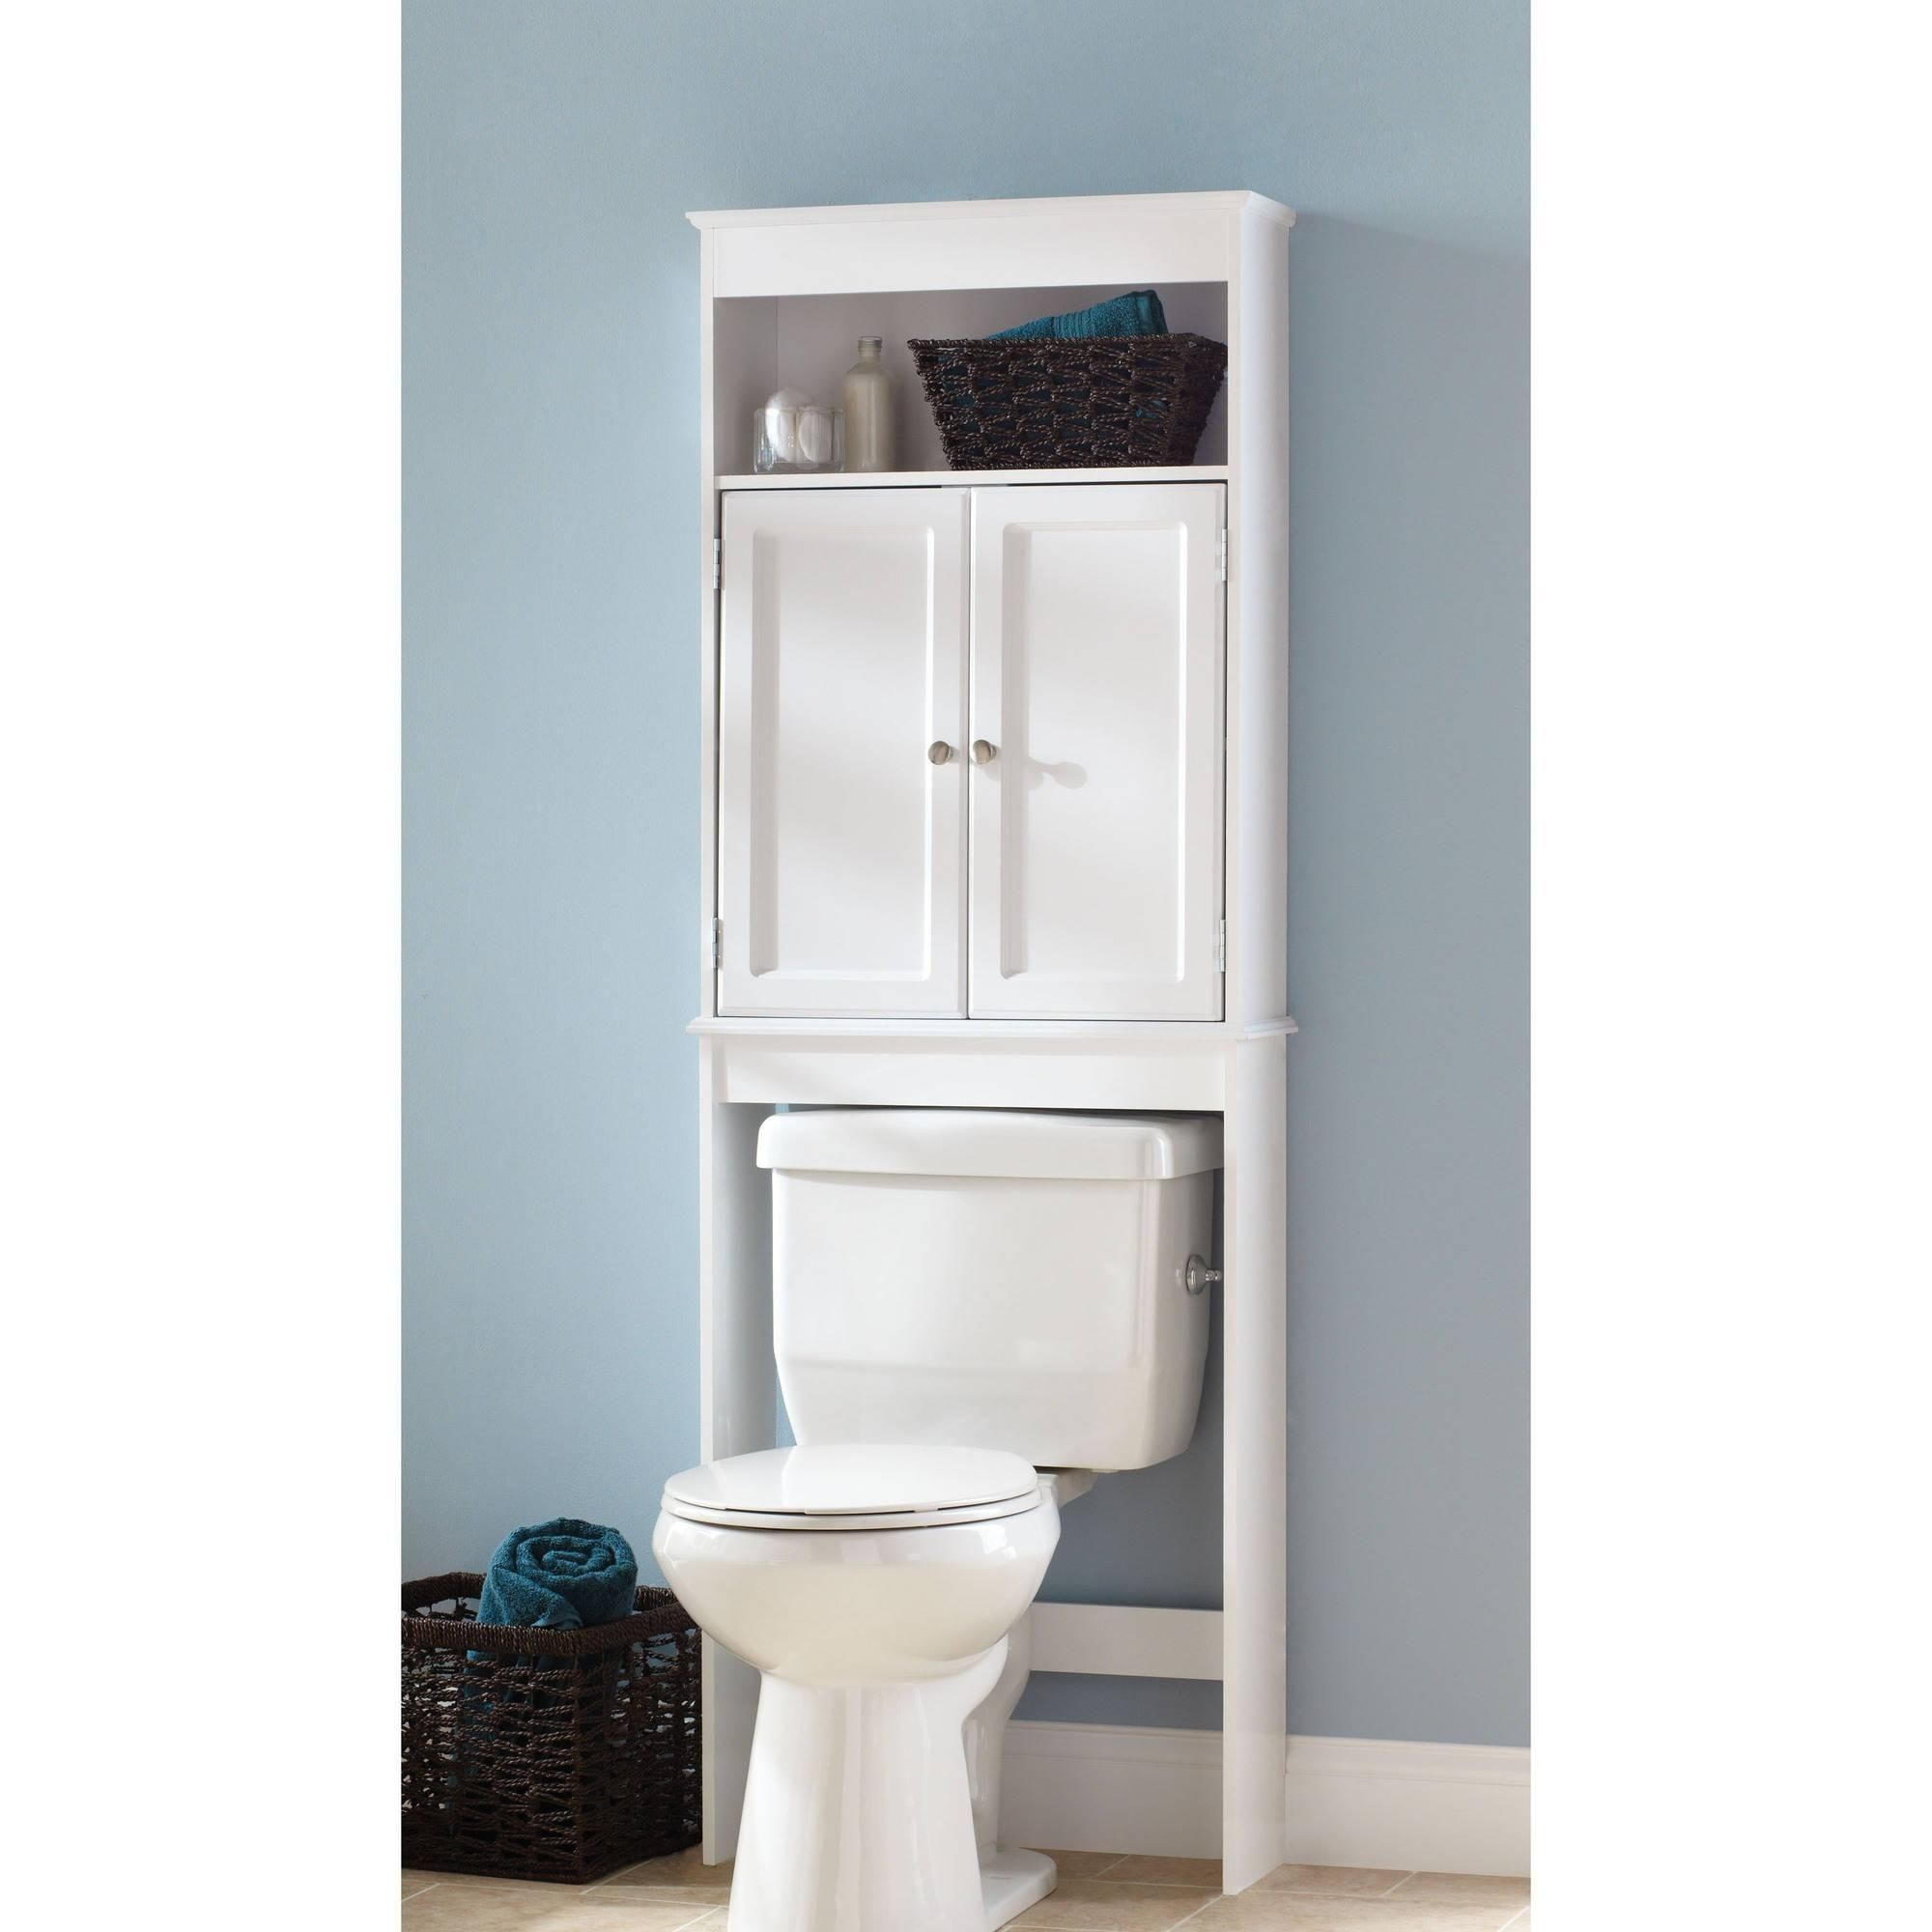 Bathroom shelves over toilet walmart | For the Home | Pinterest ...